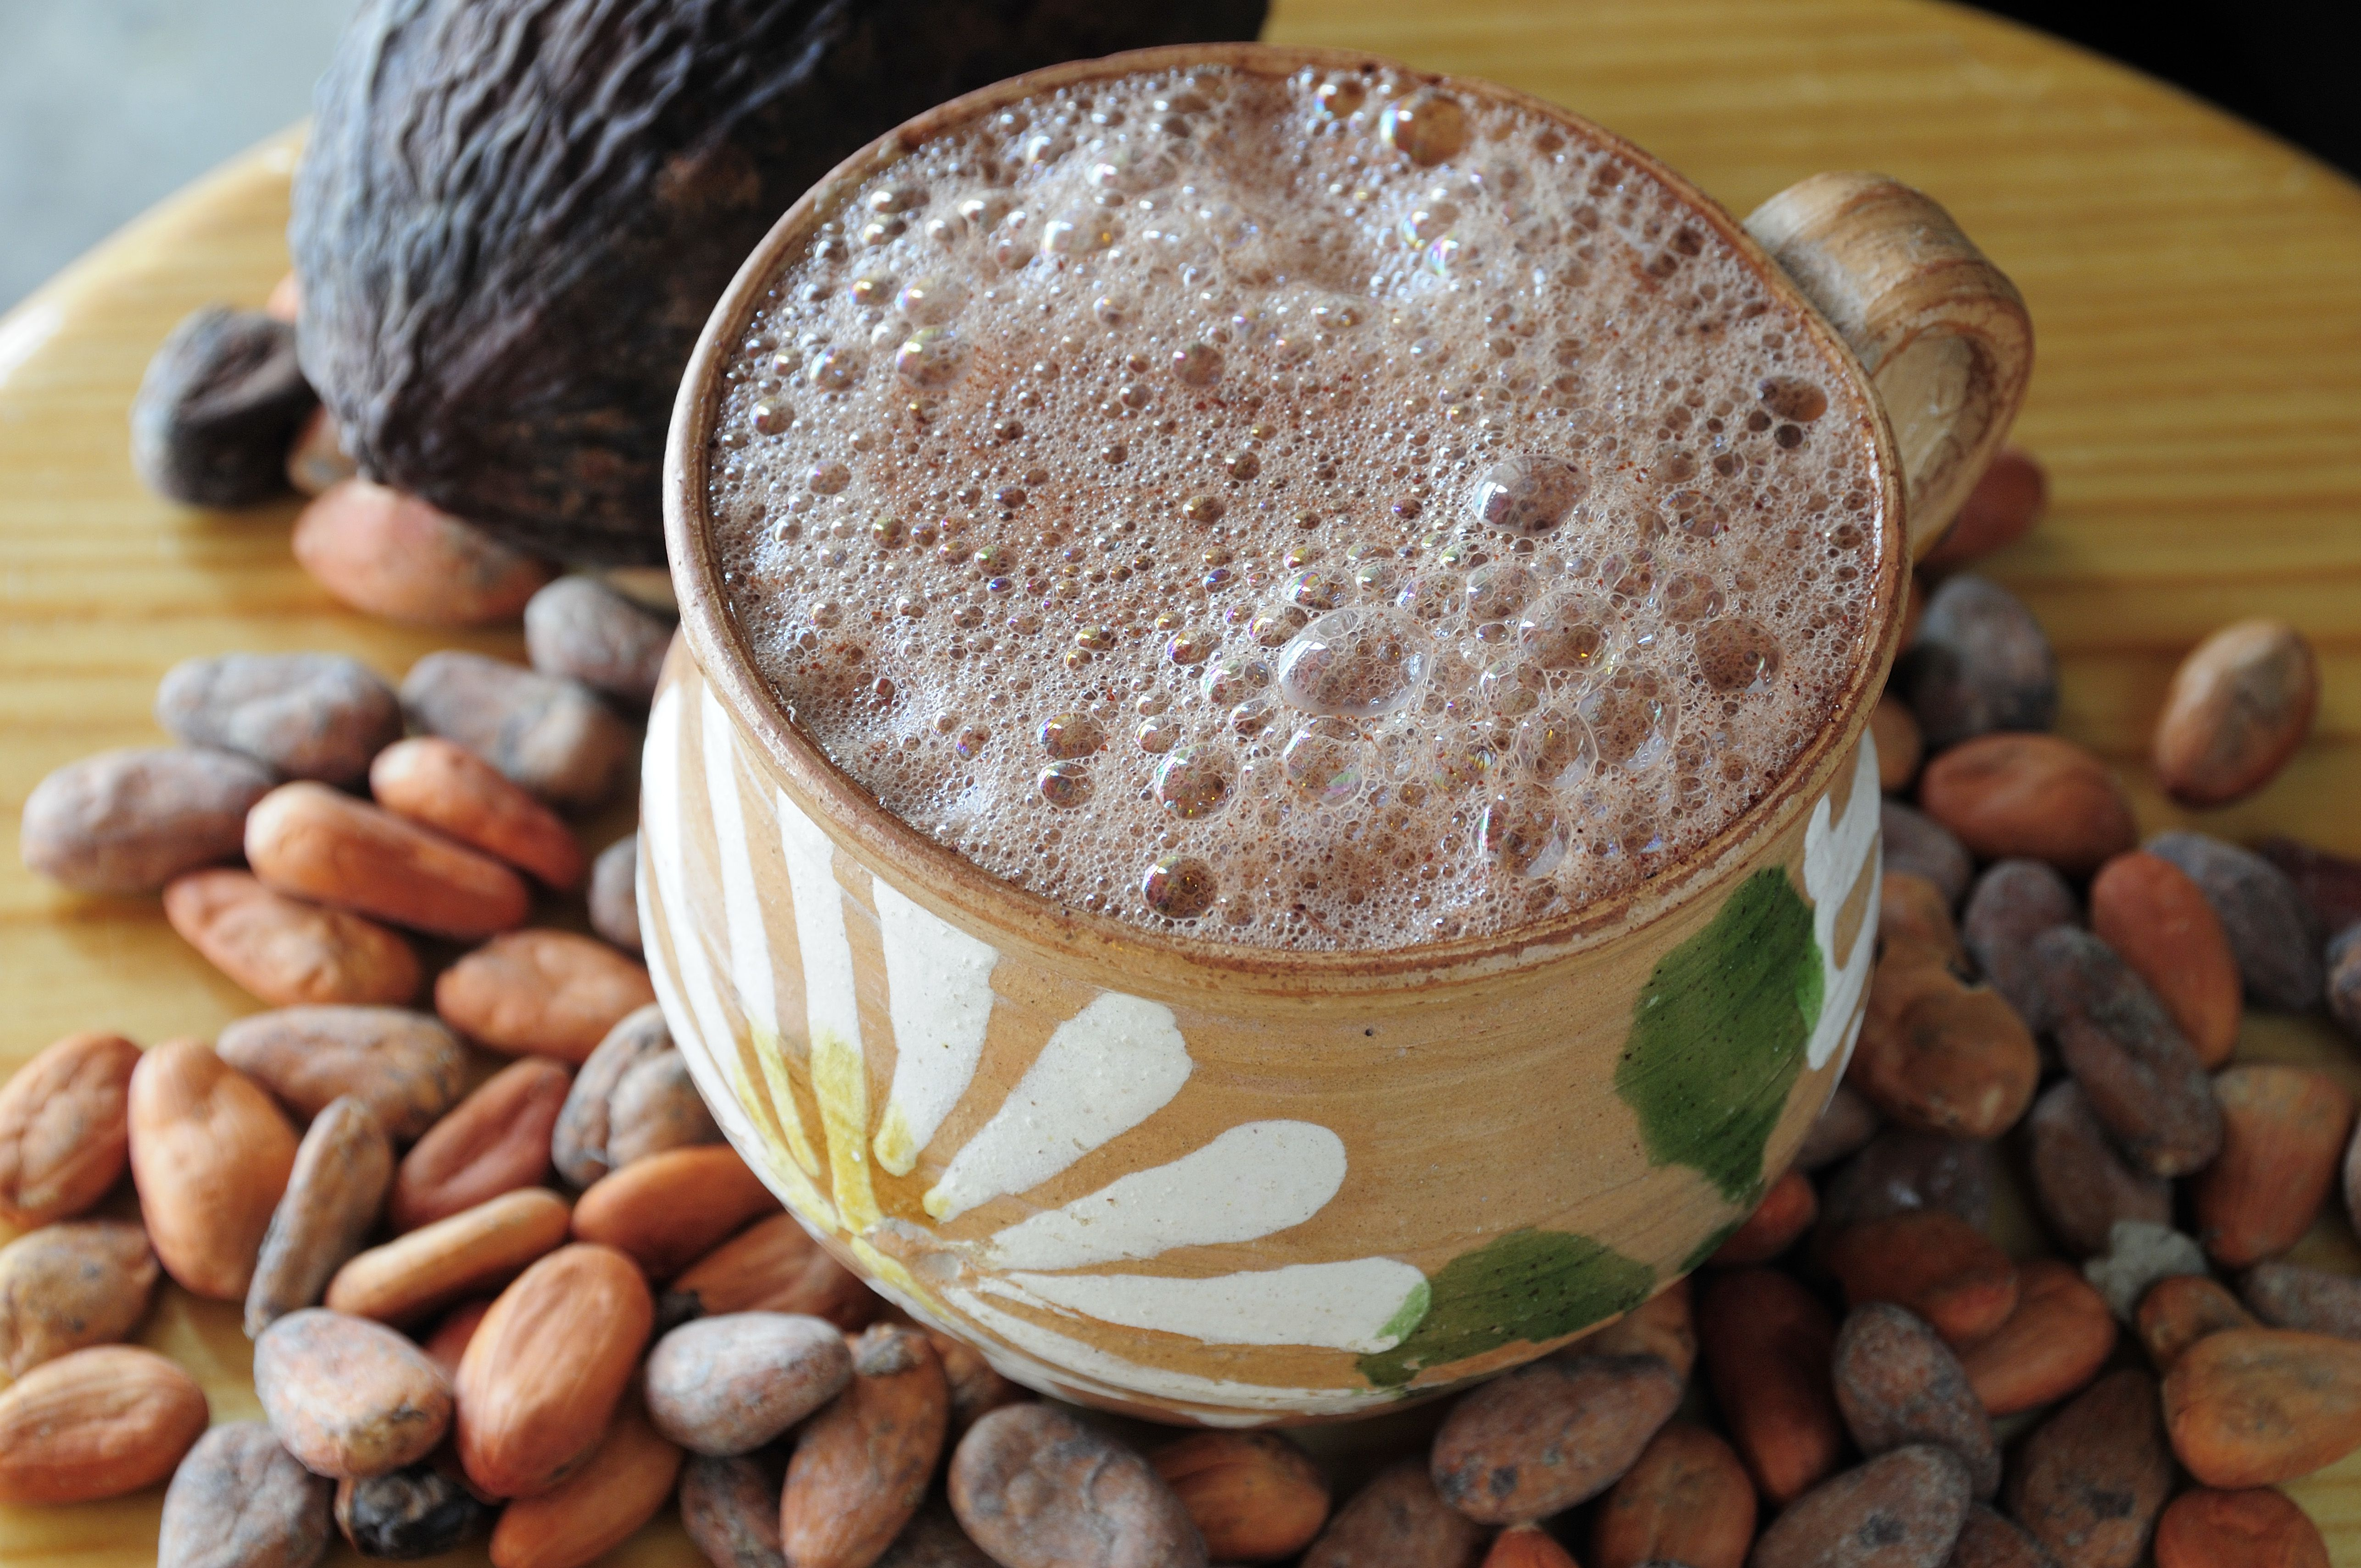 Mexico, Oaxaca, Chocolate caliente, hot chocolate in painted cup with cocoa beans and pod